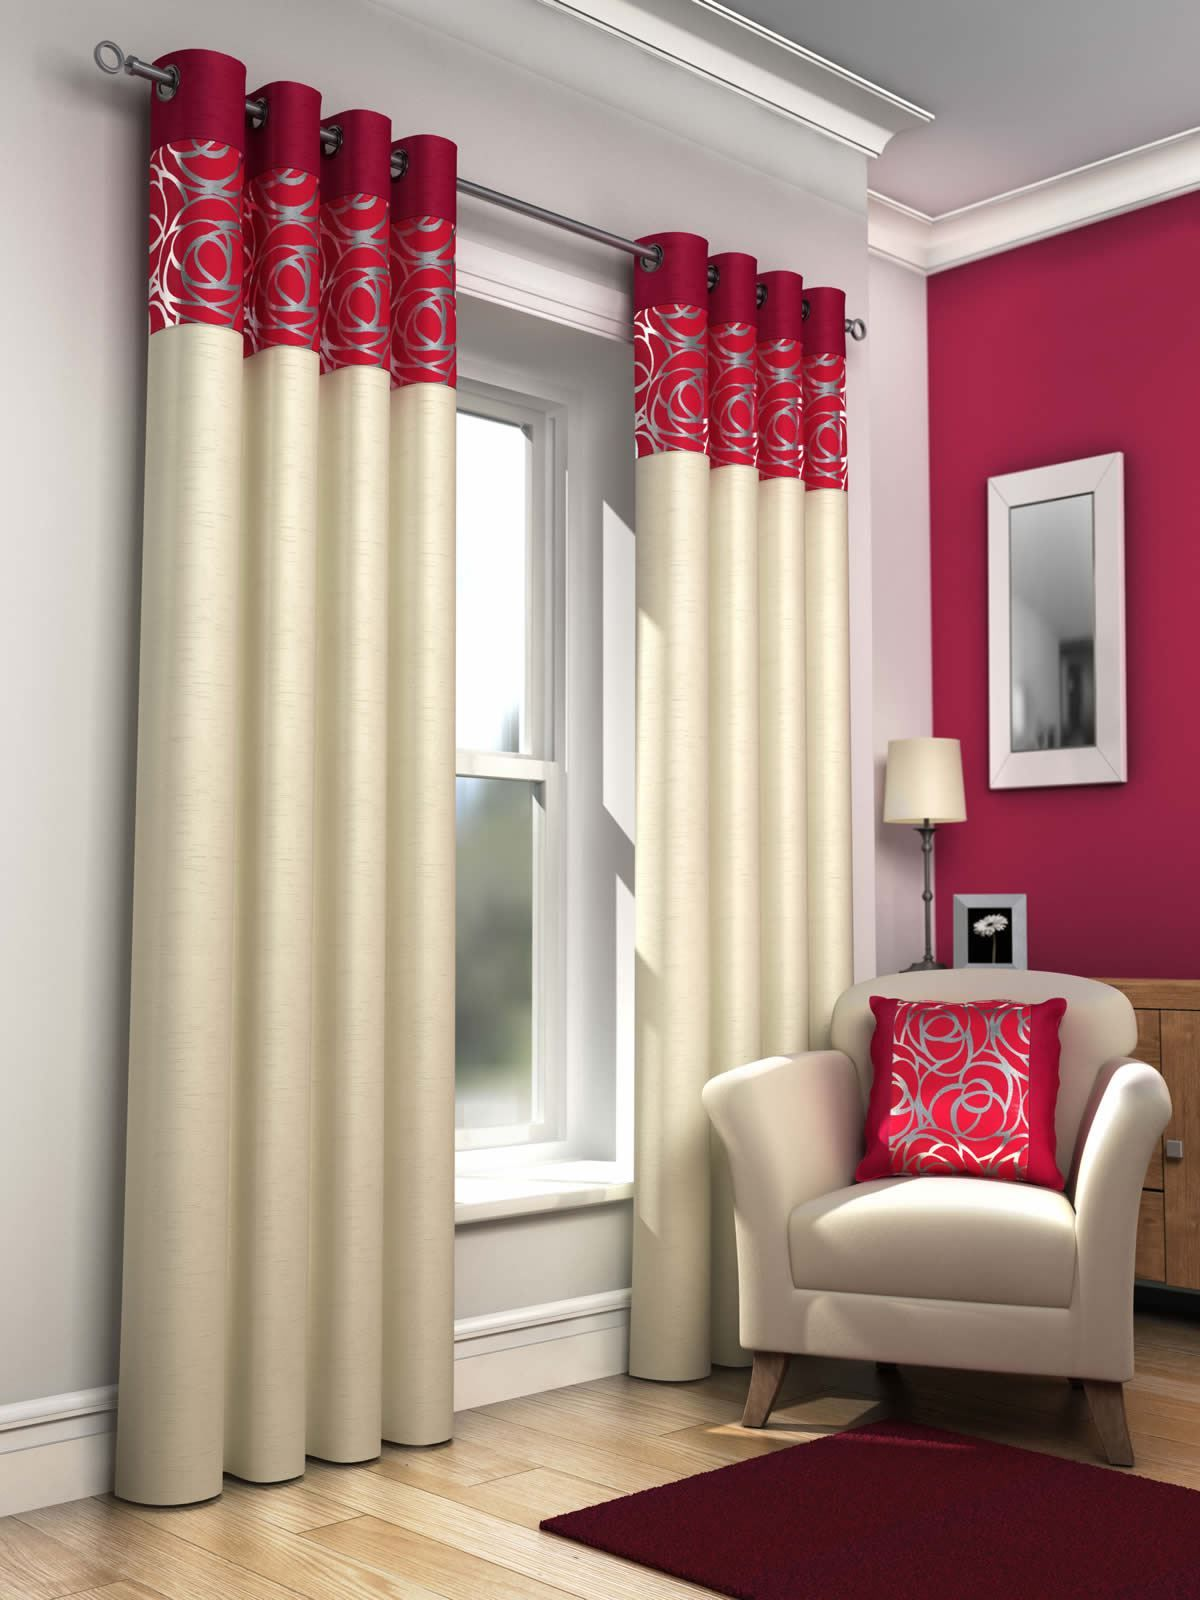 The Elegance Faux Silk Curtains Ideas For Luxury Window Accent: Red ...